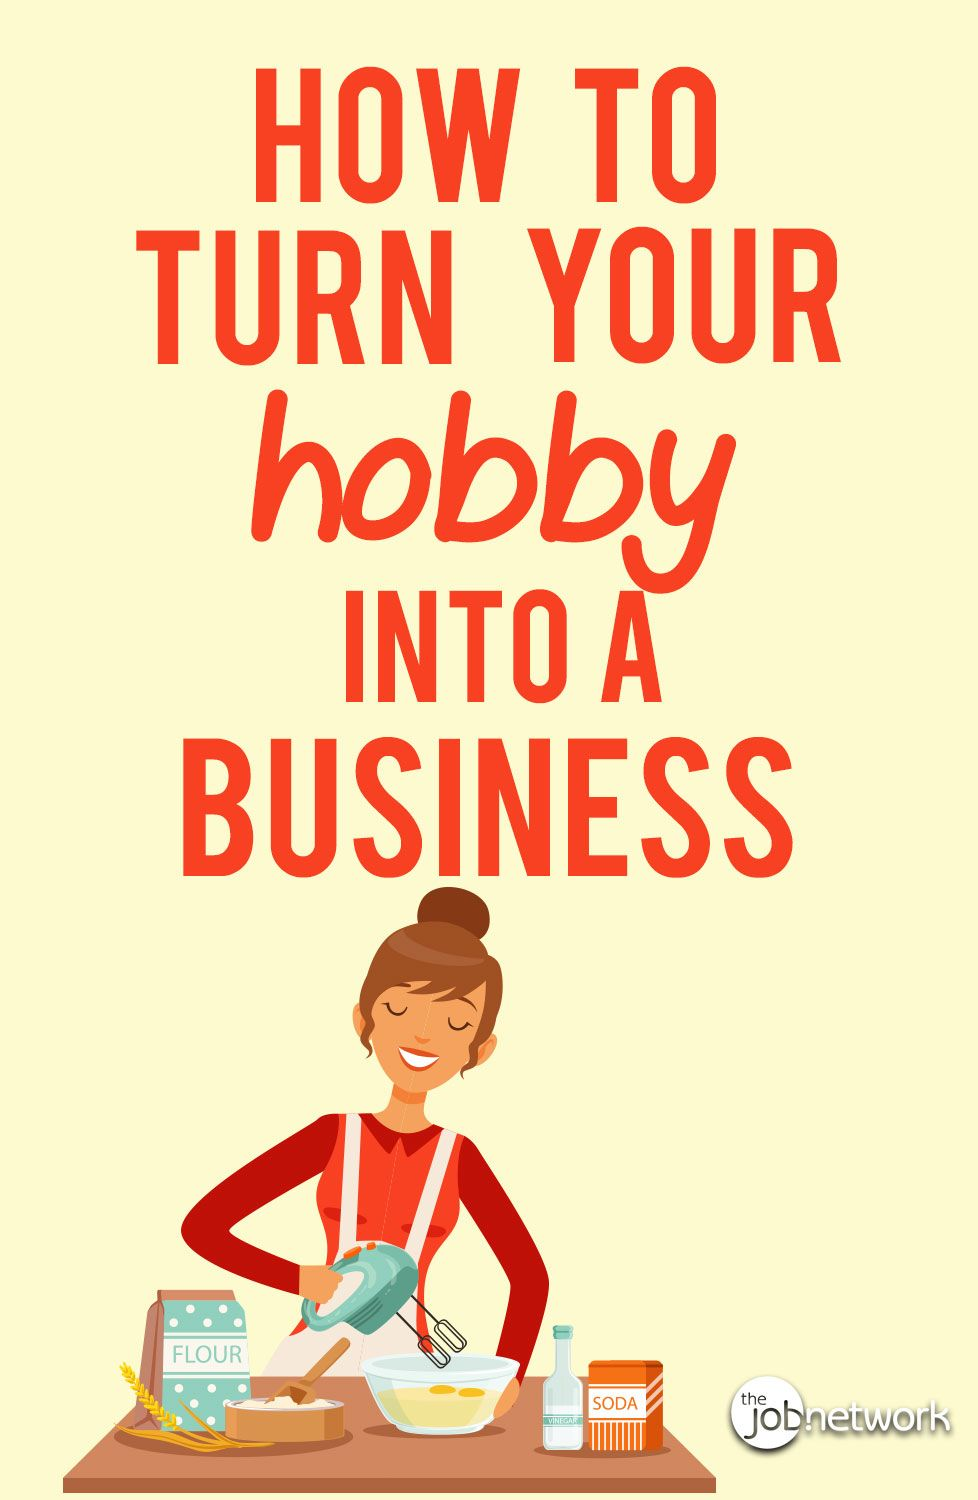 How to turn your hobby into a successful business